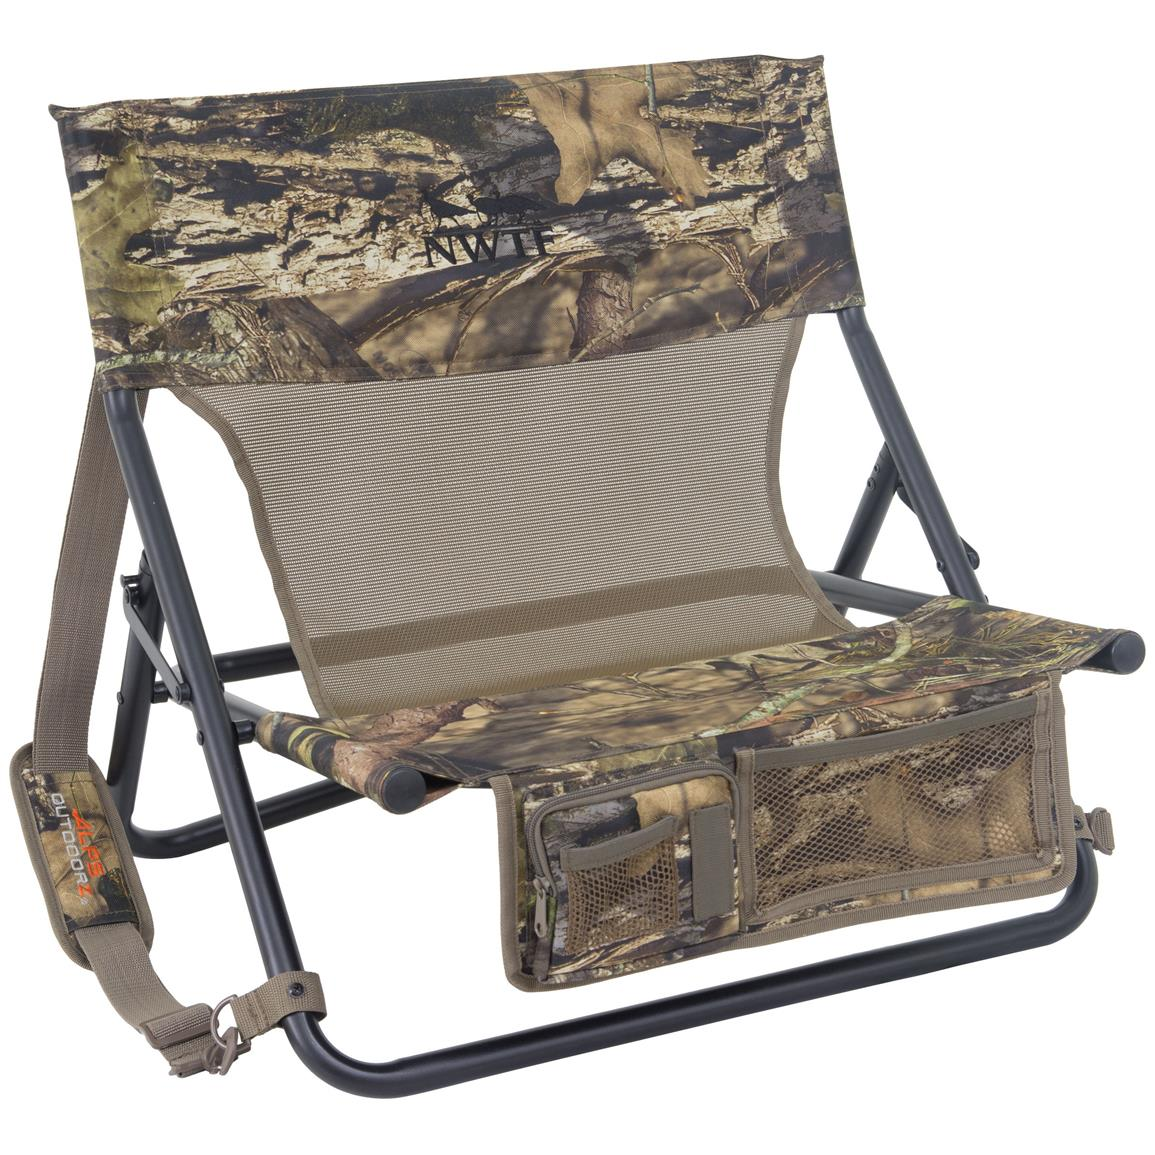 Alps OutdoorZ Turkey Chair MC, Realtree Xtra